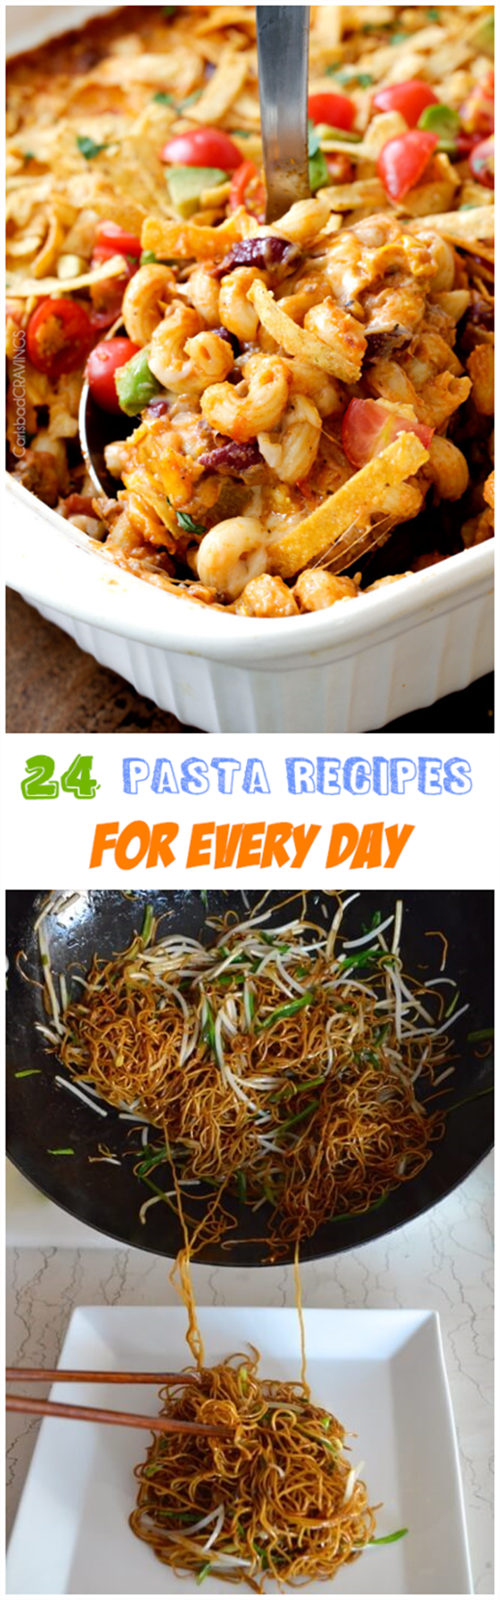 24 pasta recipes for every day